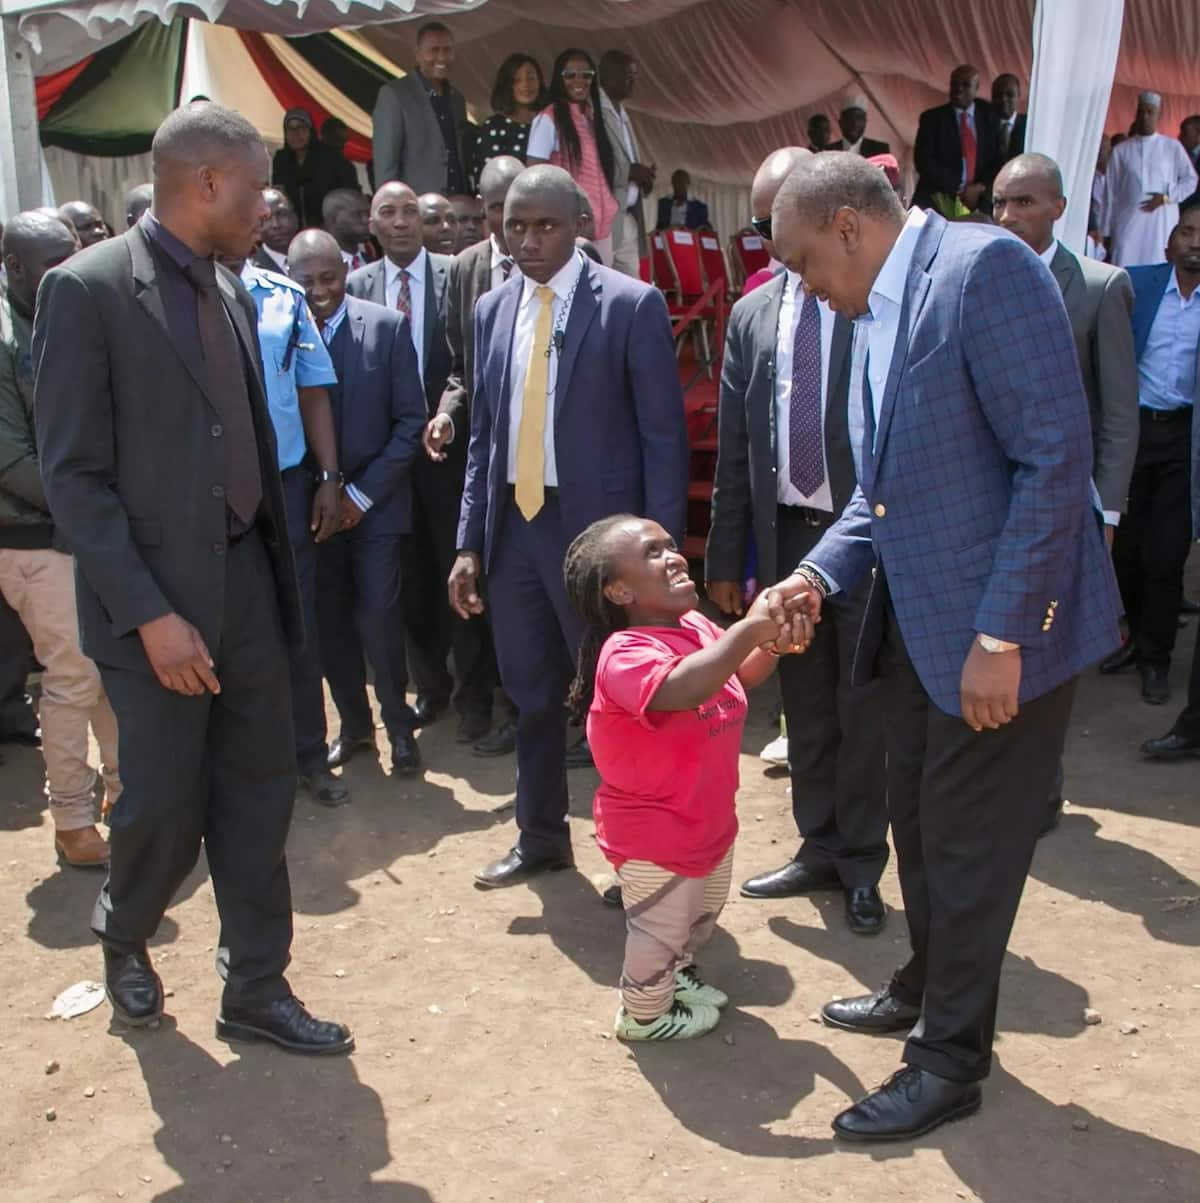 If you are a thief, carry your own cross without involving your tribe - Uhuru Kenyatta